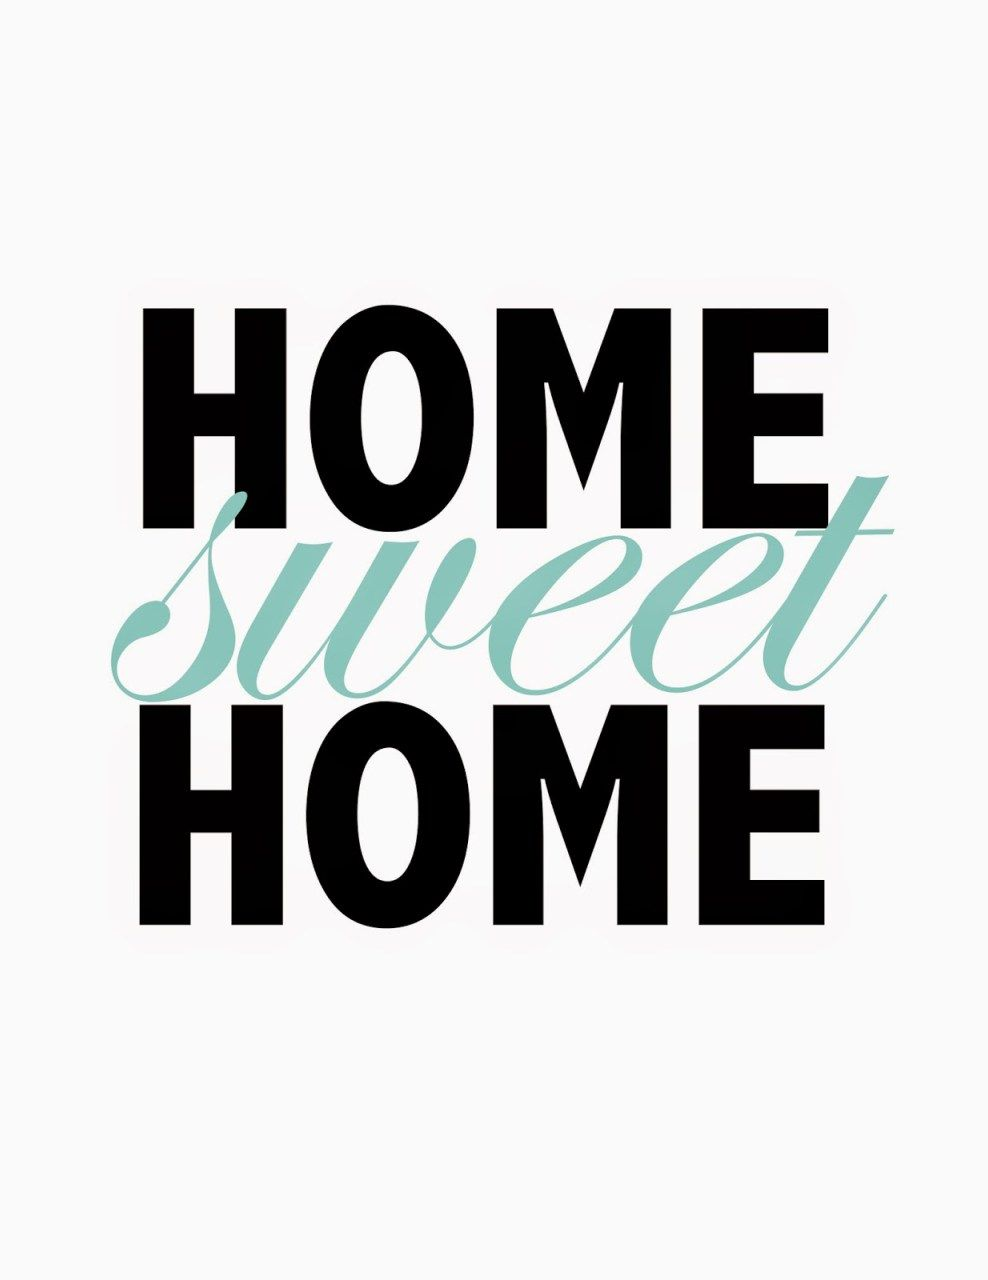 Home Sweet Home Printable Sweet Home Quote Posters Home